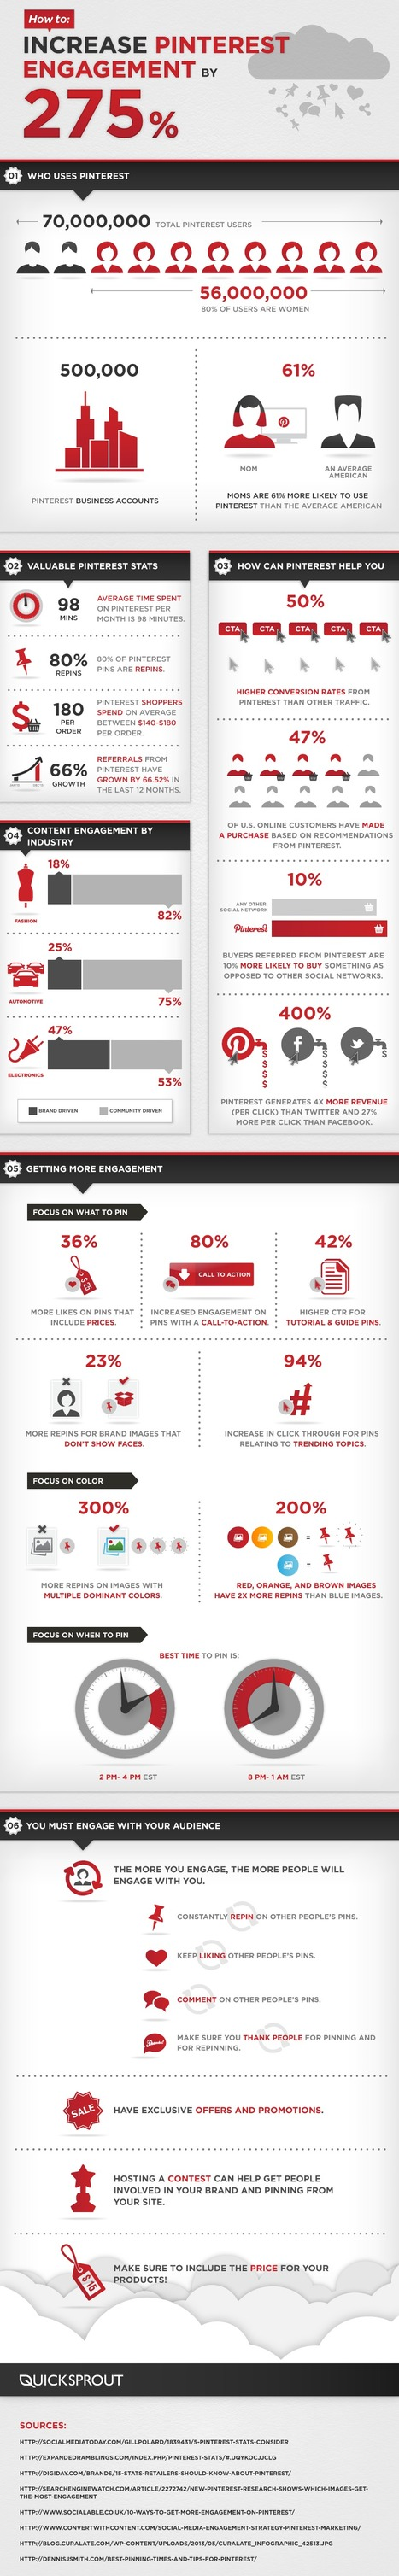 ENGAGEMENT -  Increase Pinterest Engagement by 275%  INFOGRAPHIC | Pinterest for Business | Scoop.it